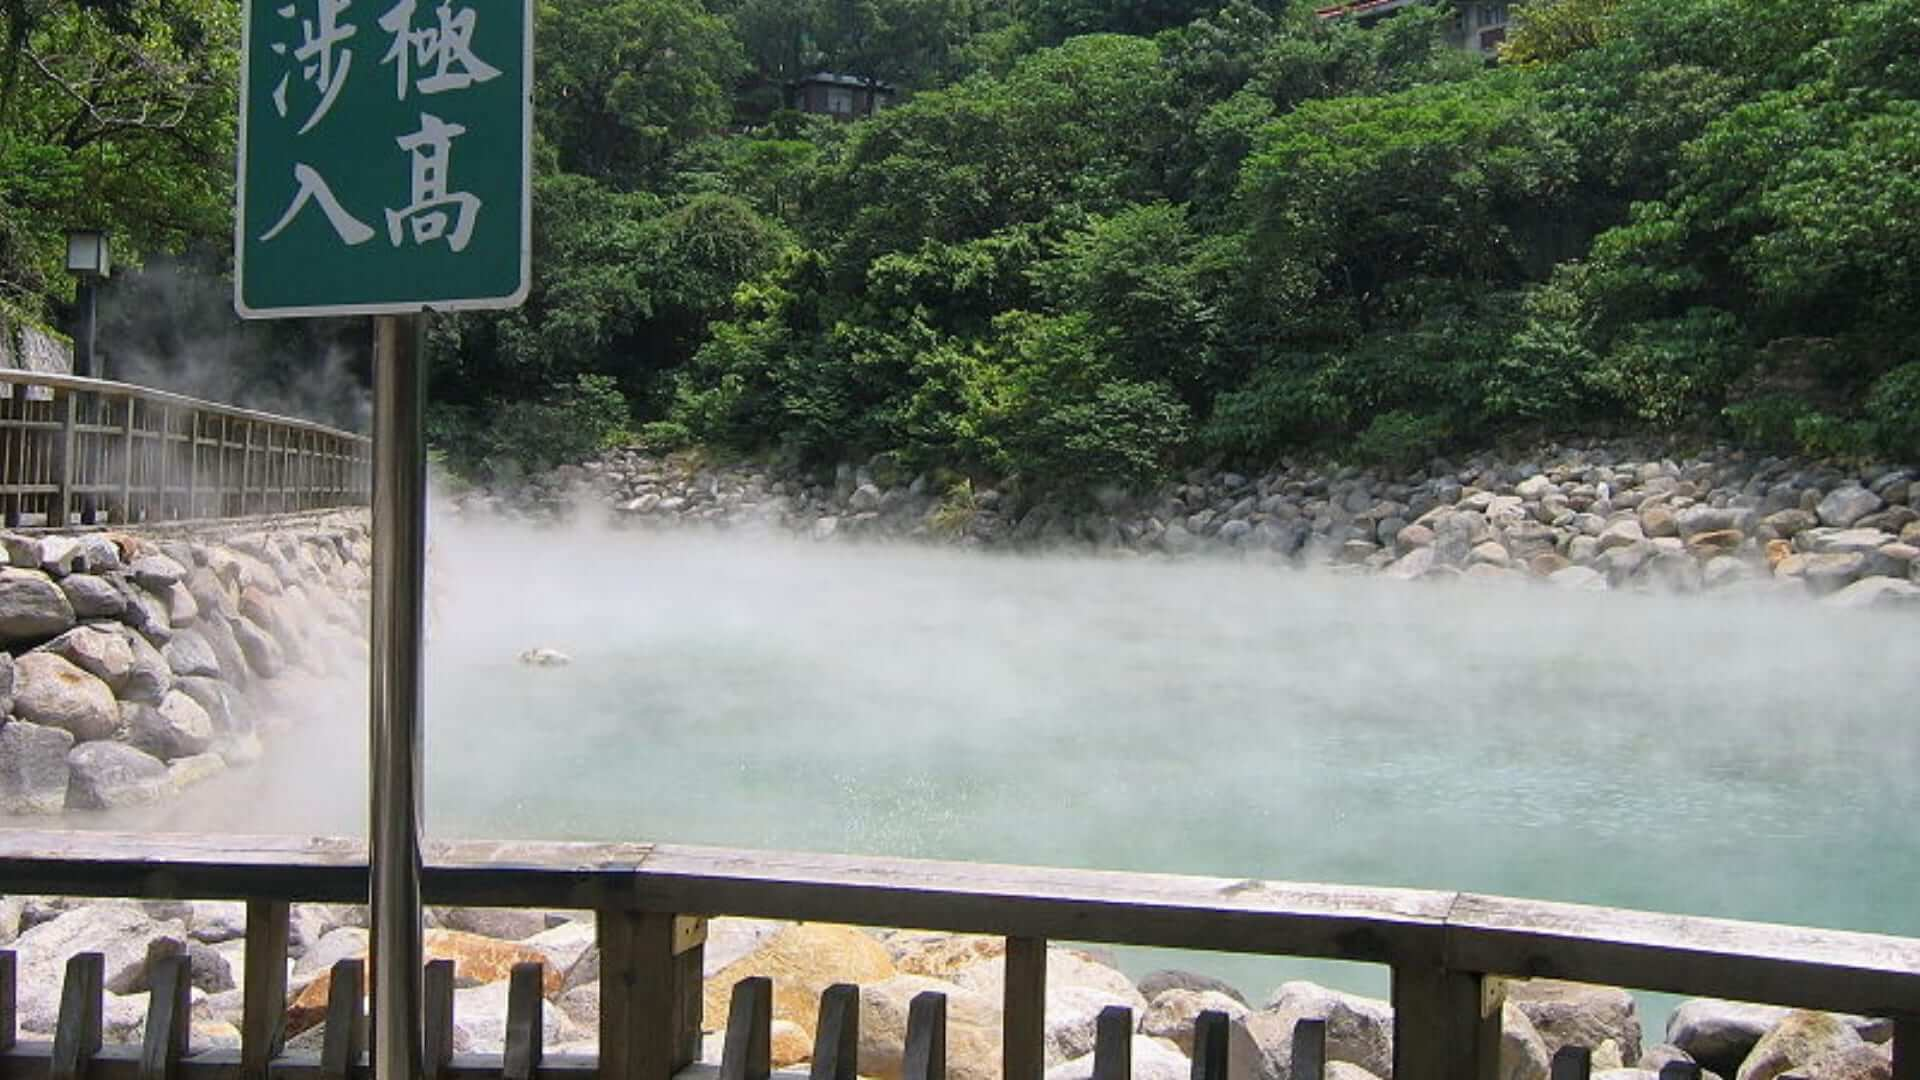 A bridge and a green plate in front of steaming water in Taiwan.